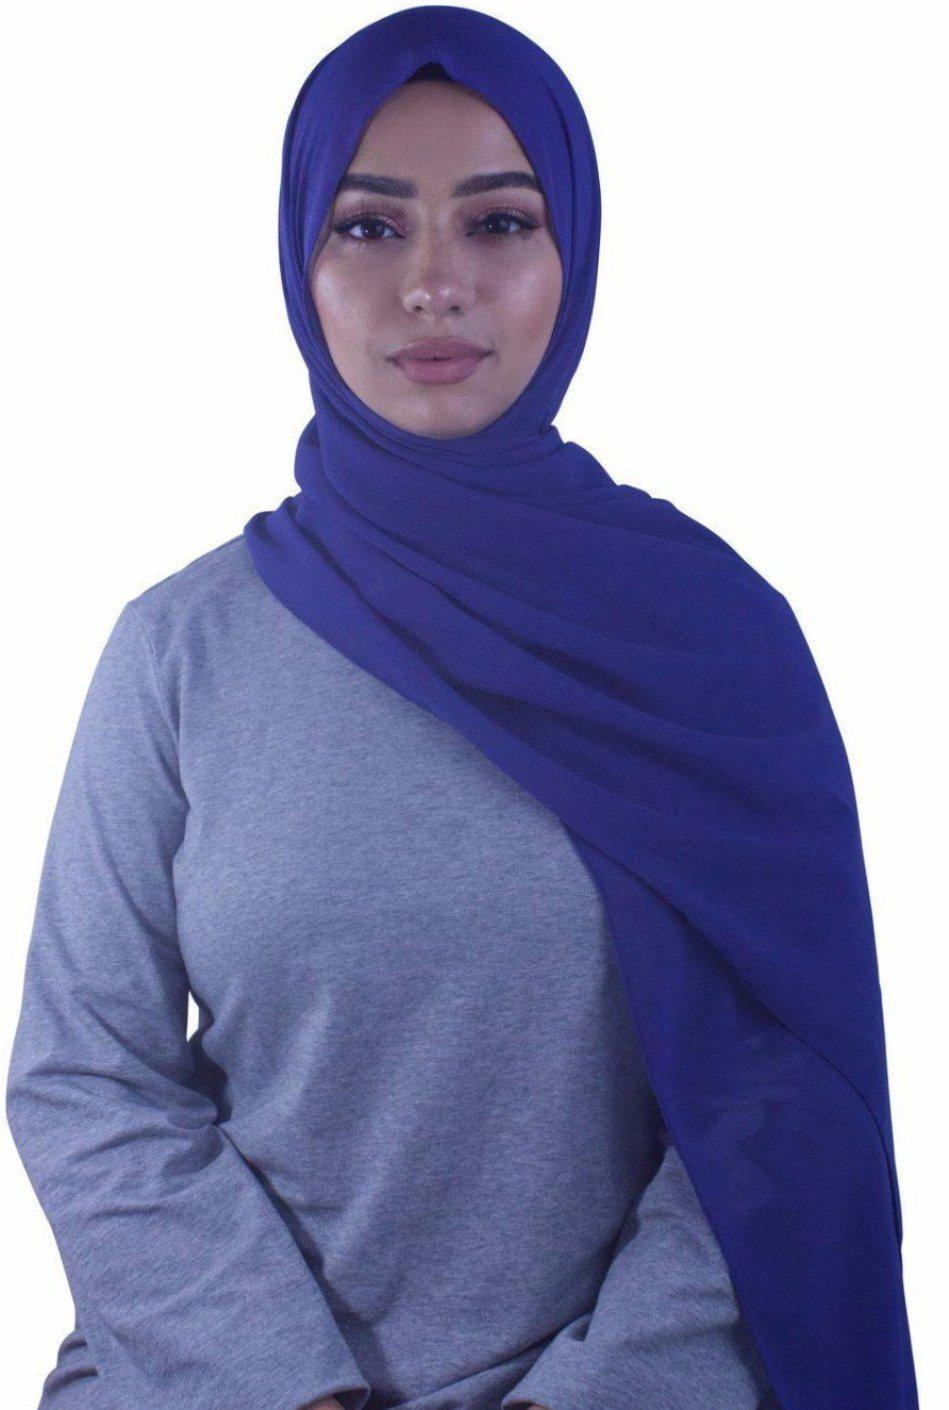 Ink Blue Chiffon Hijab - Abaya, Hijabs, Jilbabs, on sale now at UrbanModesty.com